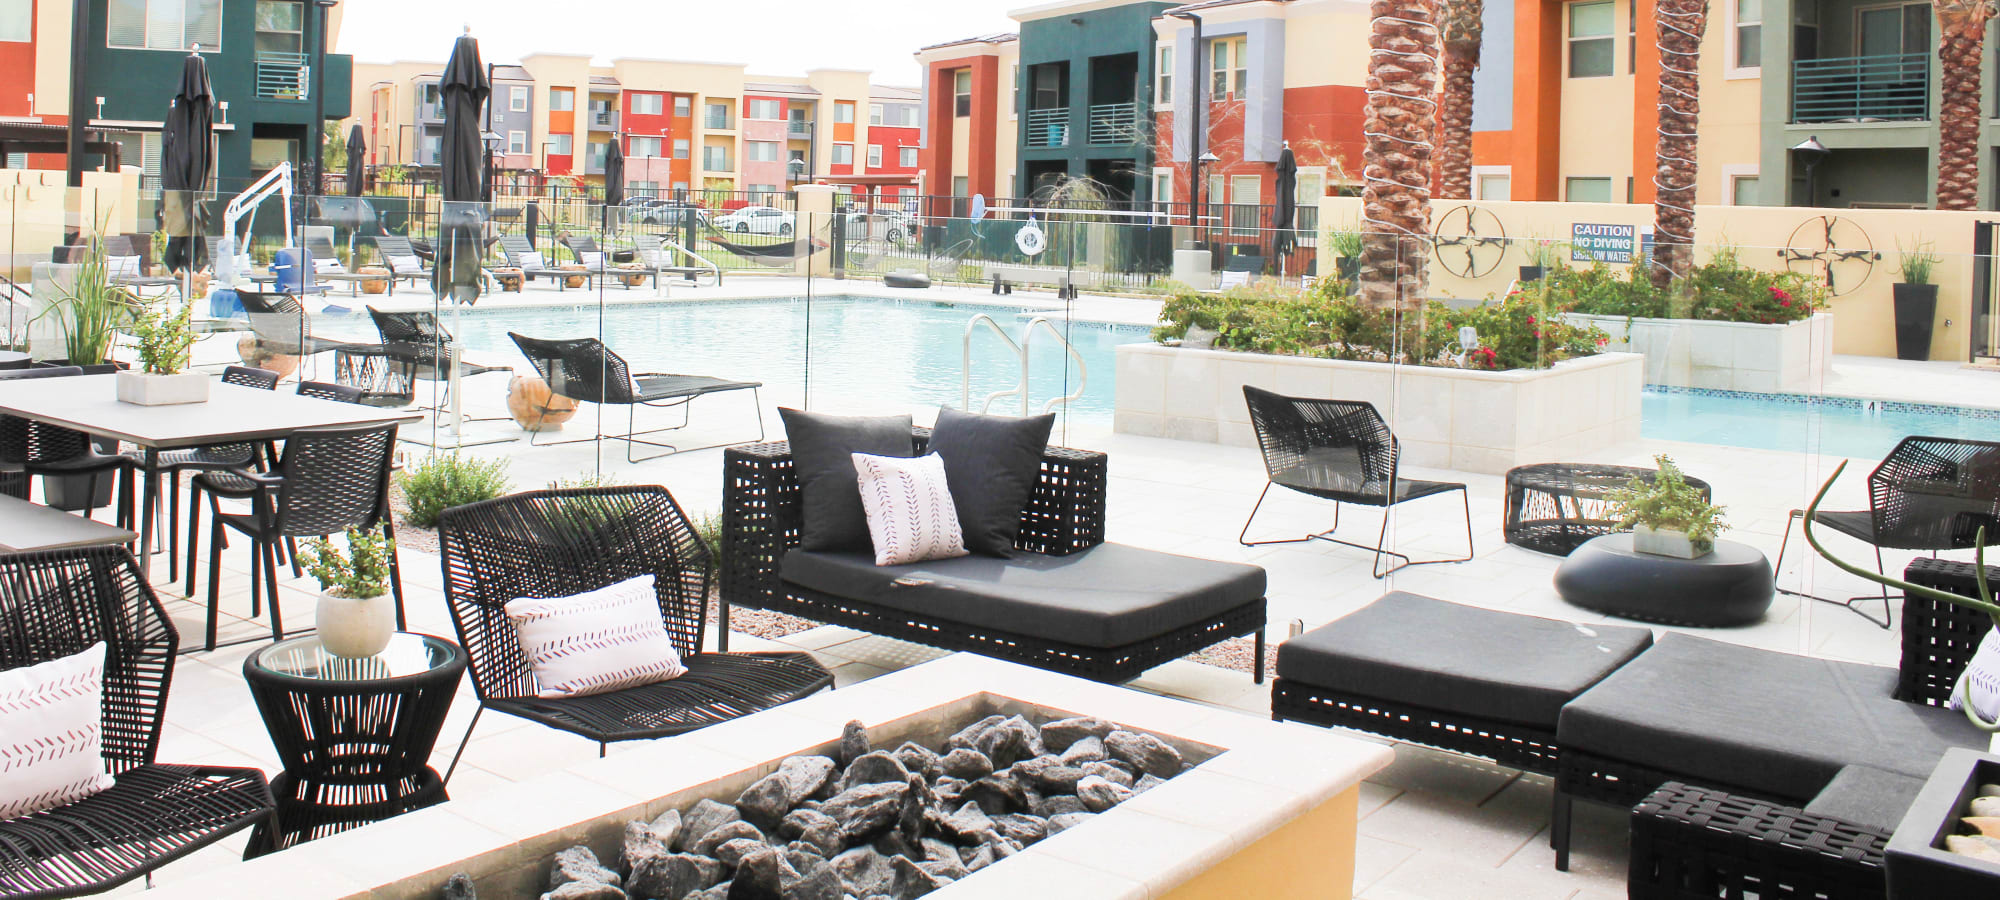 Fire Pit with Pool View at Villa Vita Apartments in Peoria, Arizona